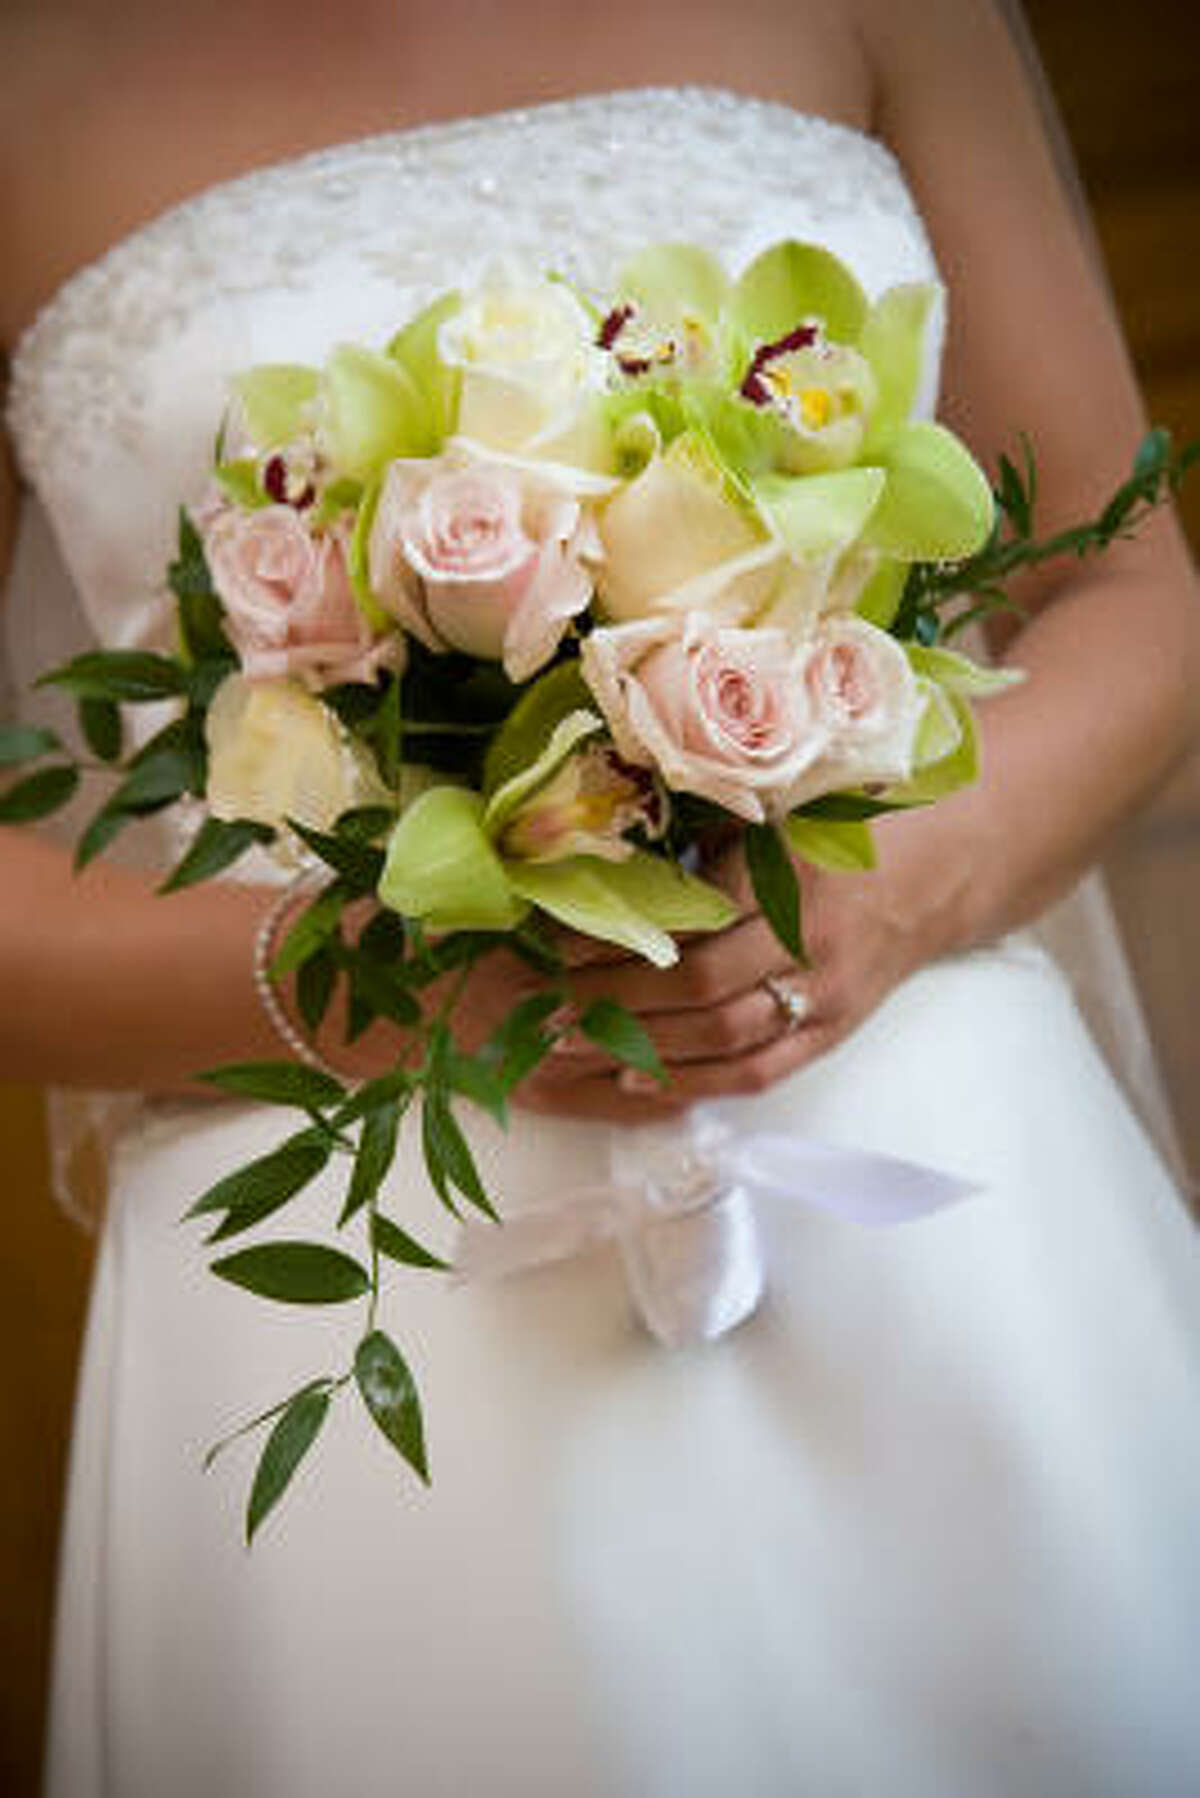 The traditional bridal white and bouquet may be thrown out like rice for some feminists.